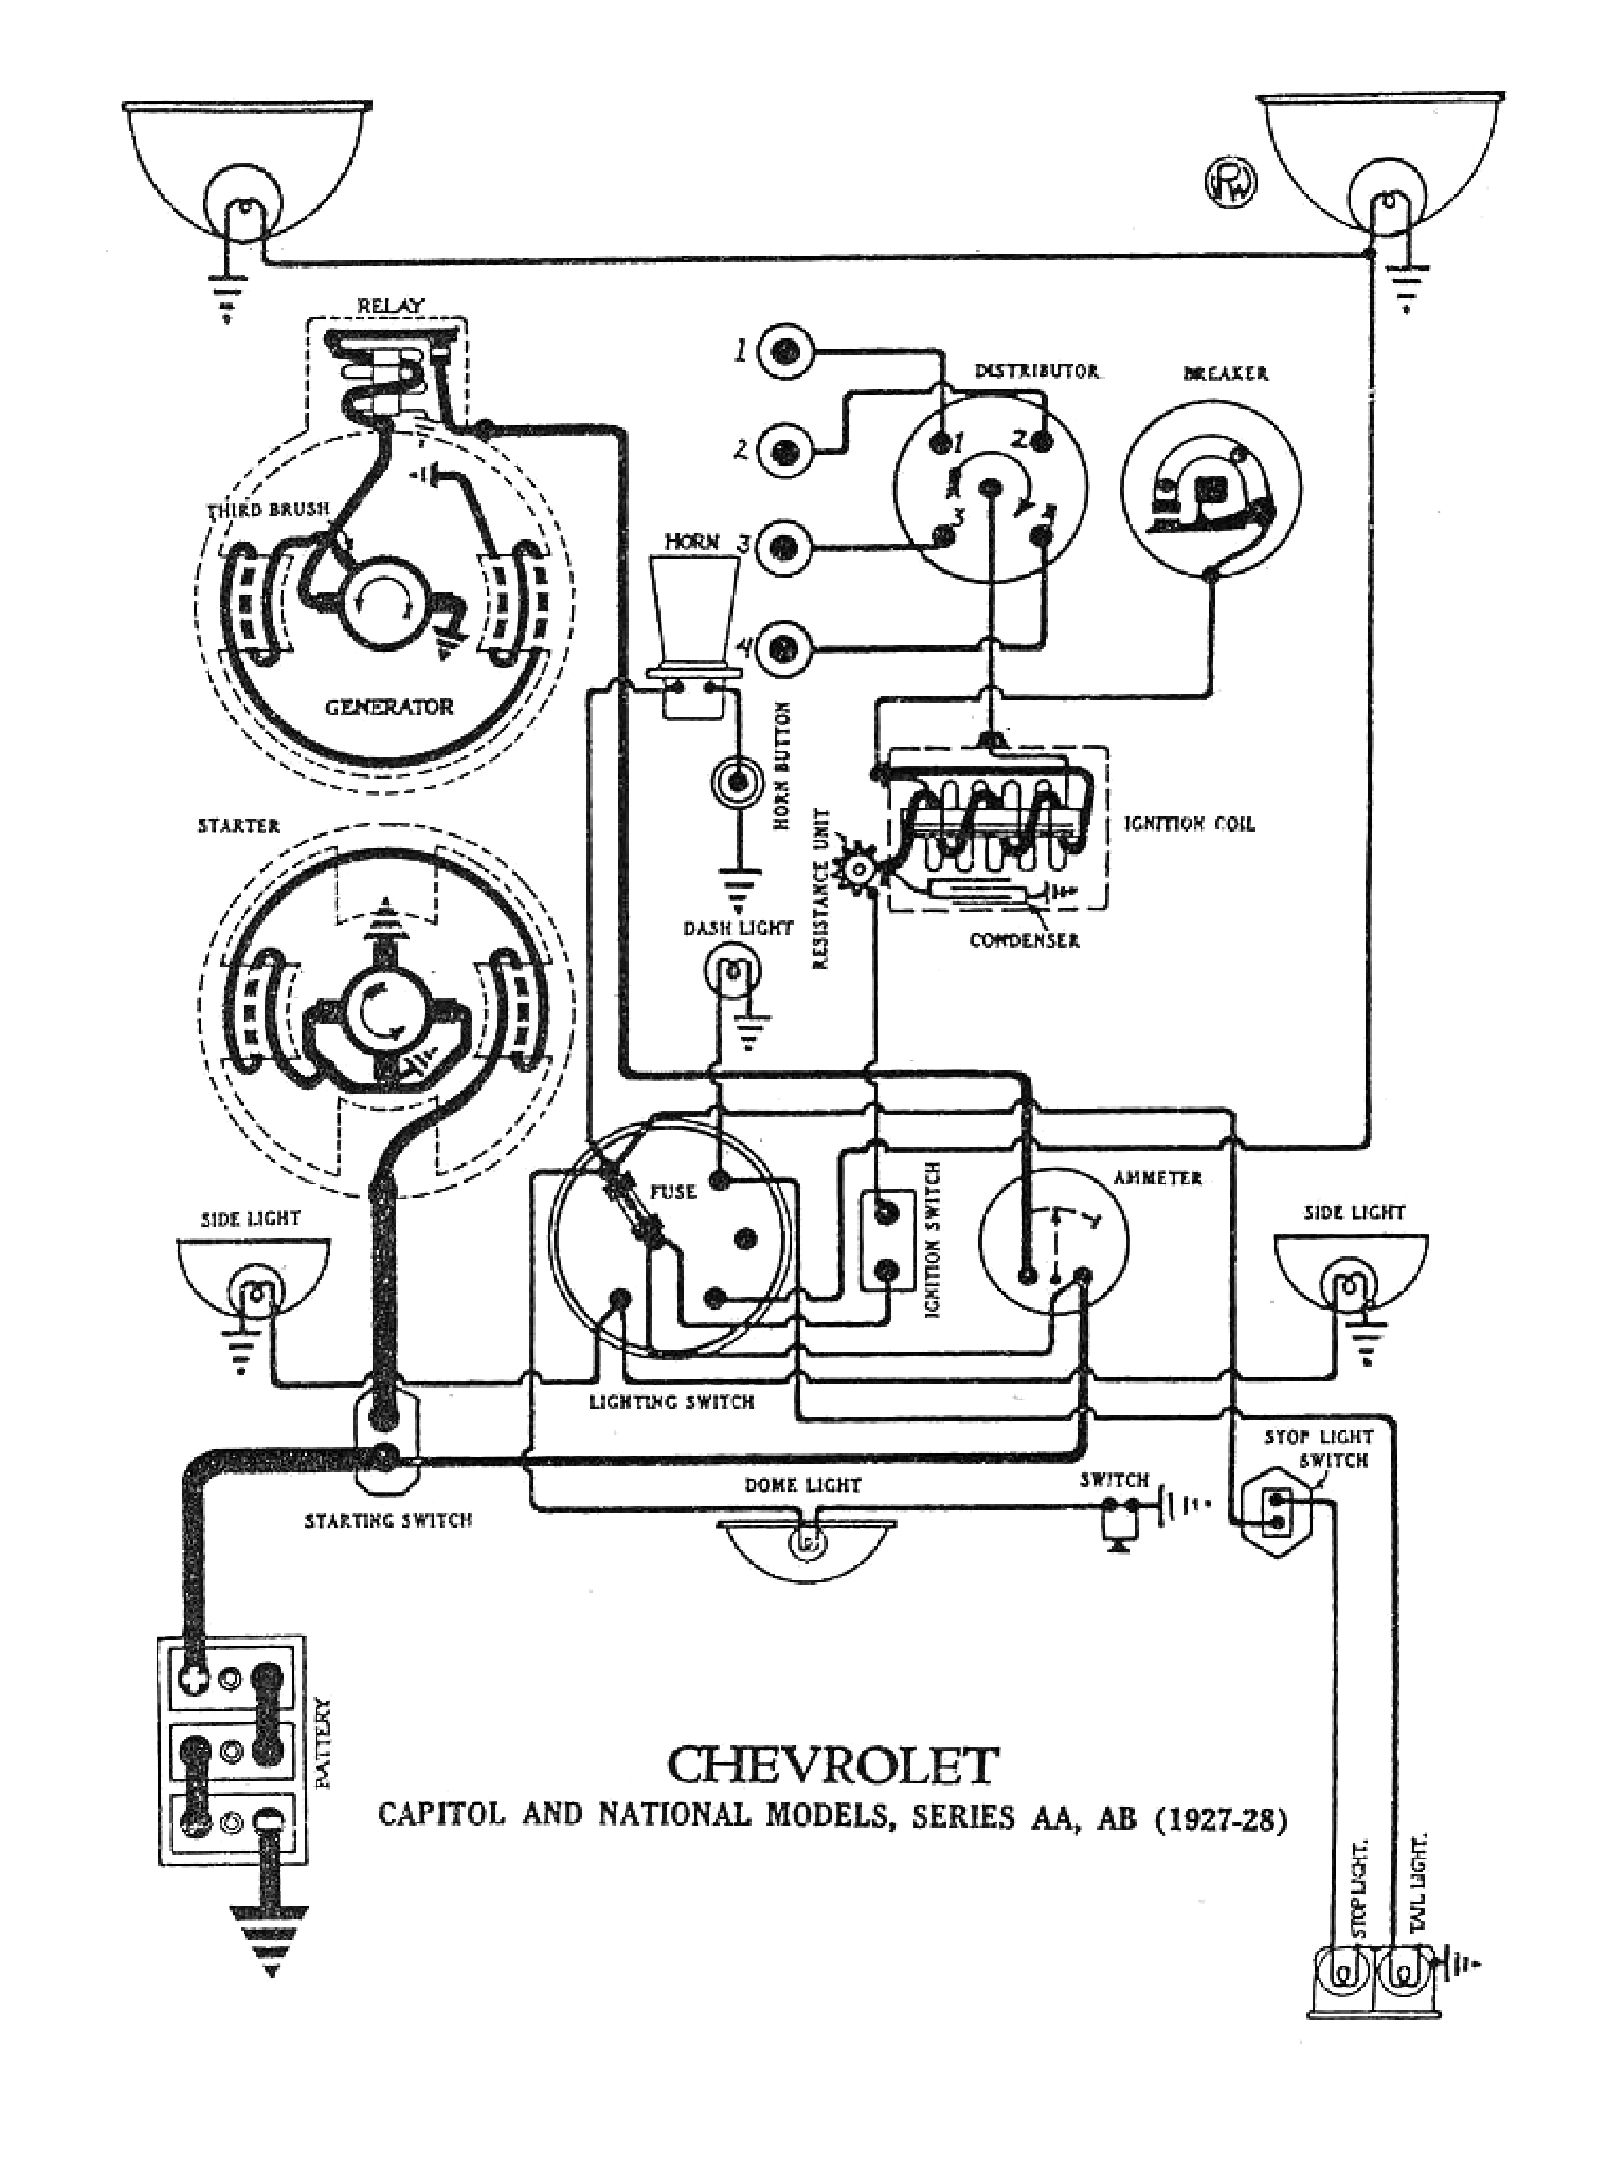 Chevy Small Block Wiring Diagram Free Download Great Installation Sbc Engine Test Stand Library Rh 68 Csu Lichtenhof De Schematics